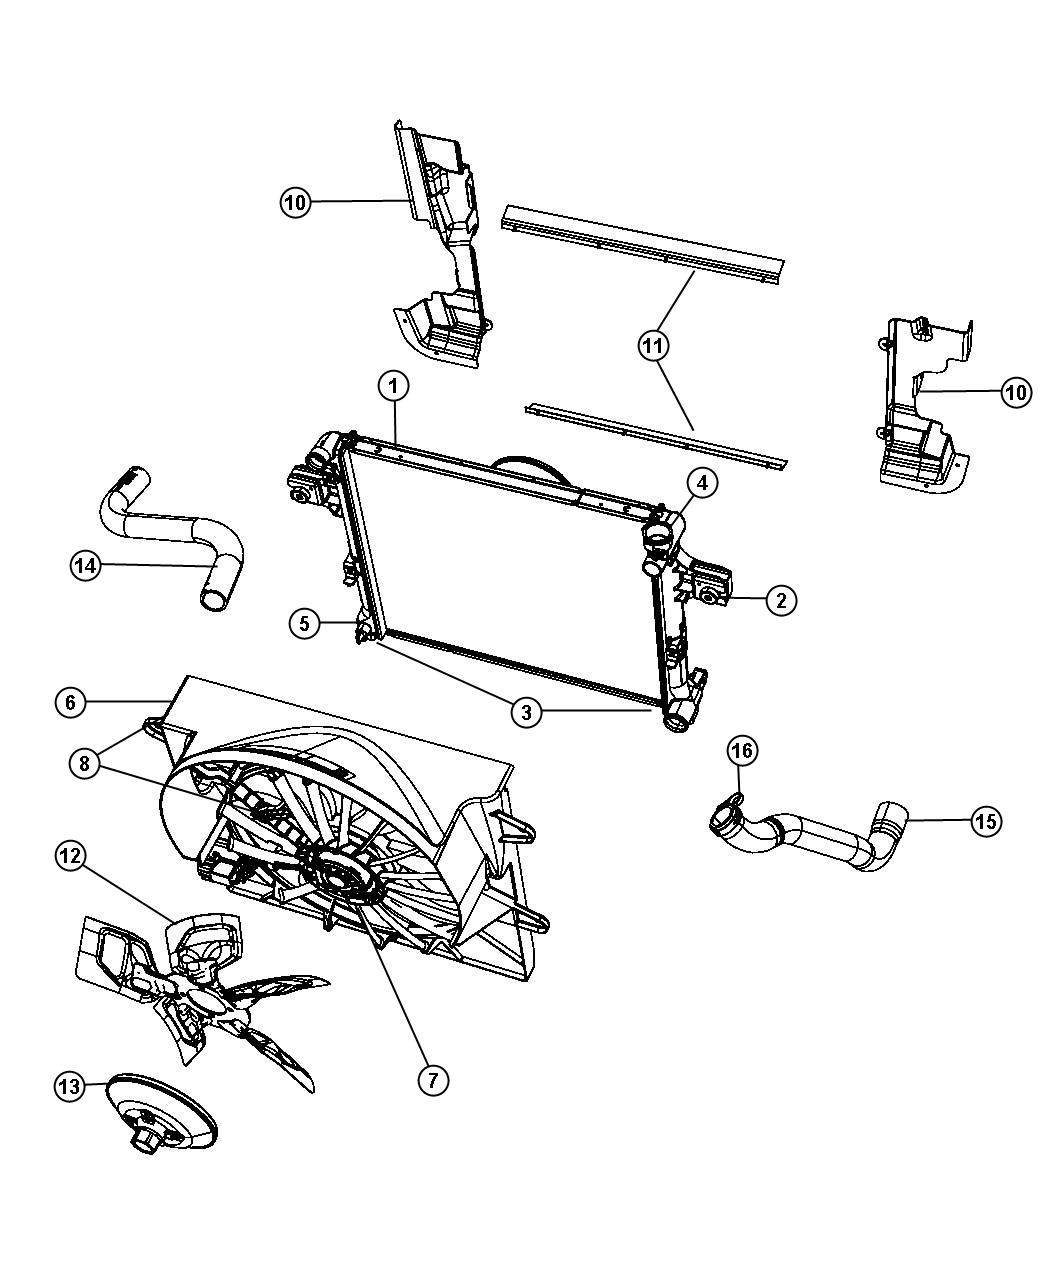 Diagram Radiator and Related Parts 3.7L [3.7L V6 Engine] 4.7L [4.7L V8 Engine]. for your 2008 Jeep